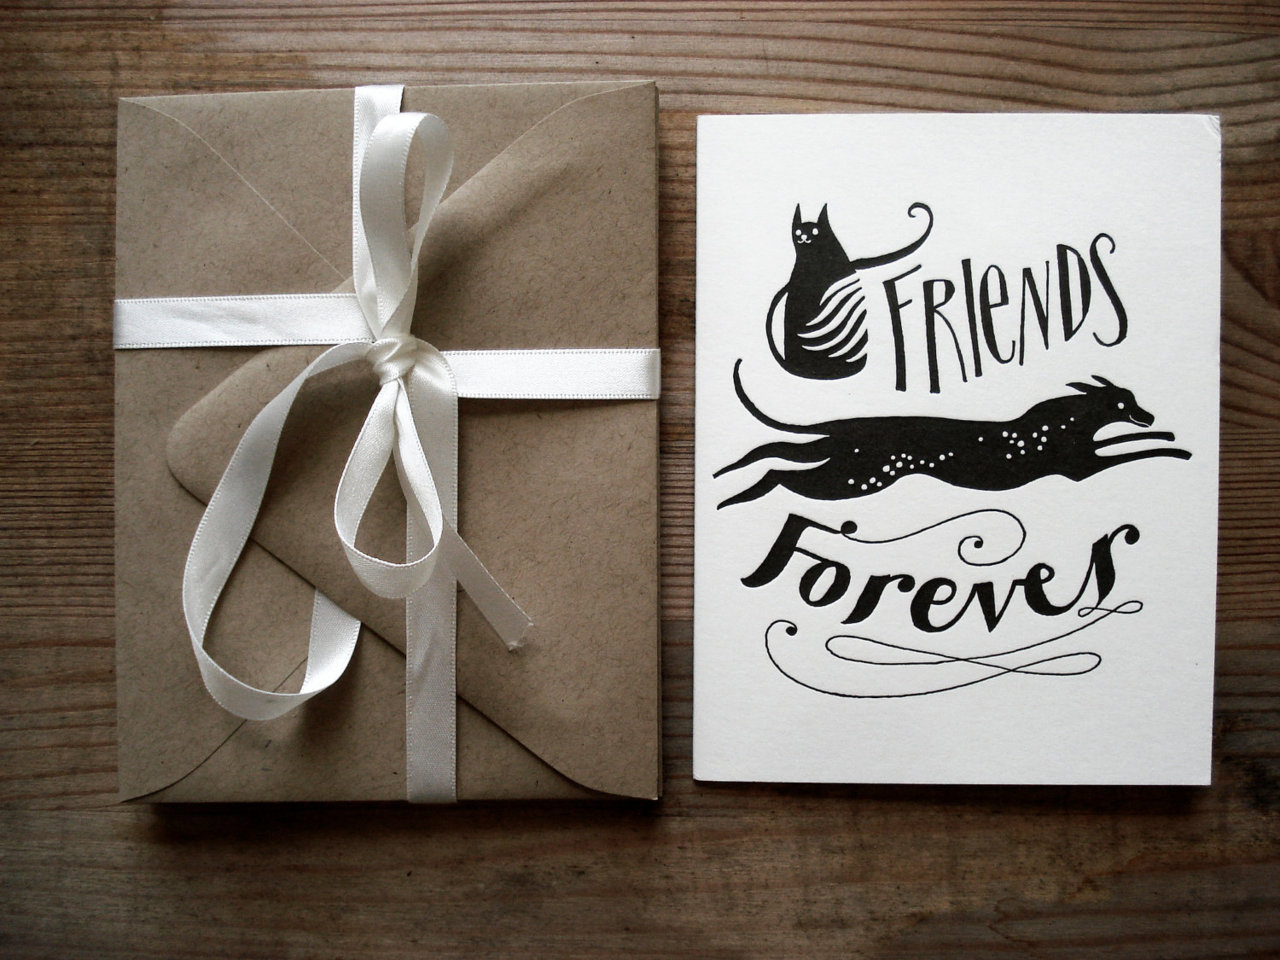 (via Friends Forever by KarolinSchnoor on Etsy)